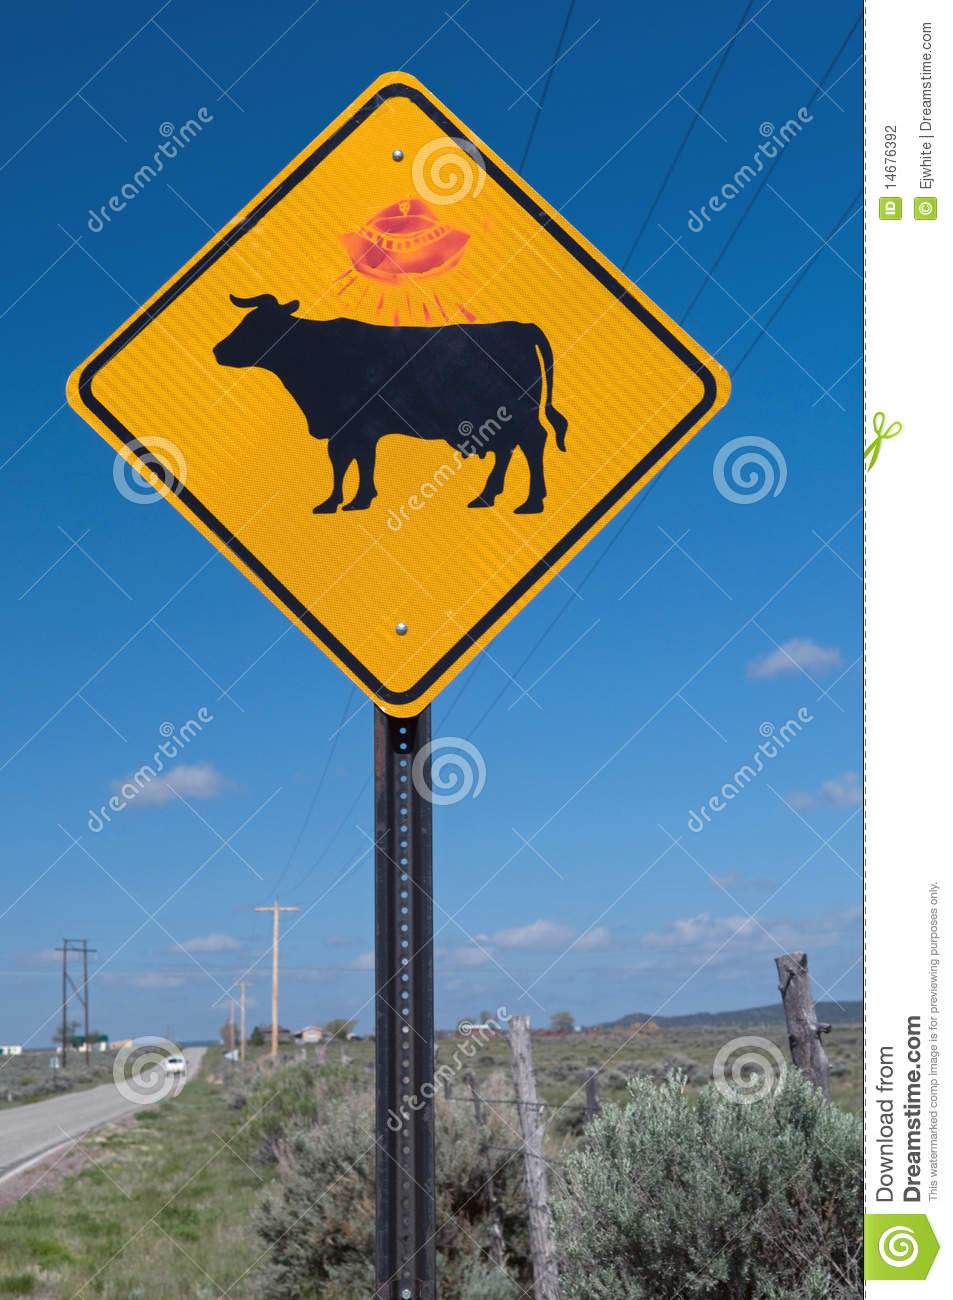 Cattle warning sign with UFO graffiti, New Mexico